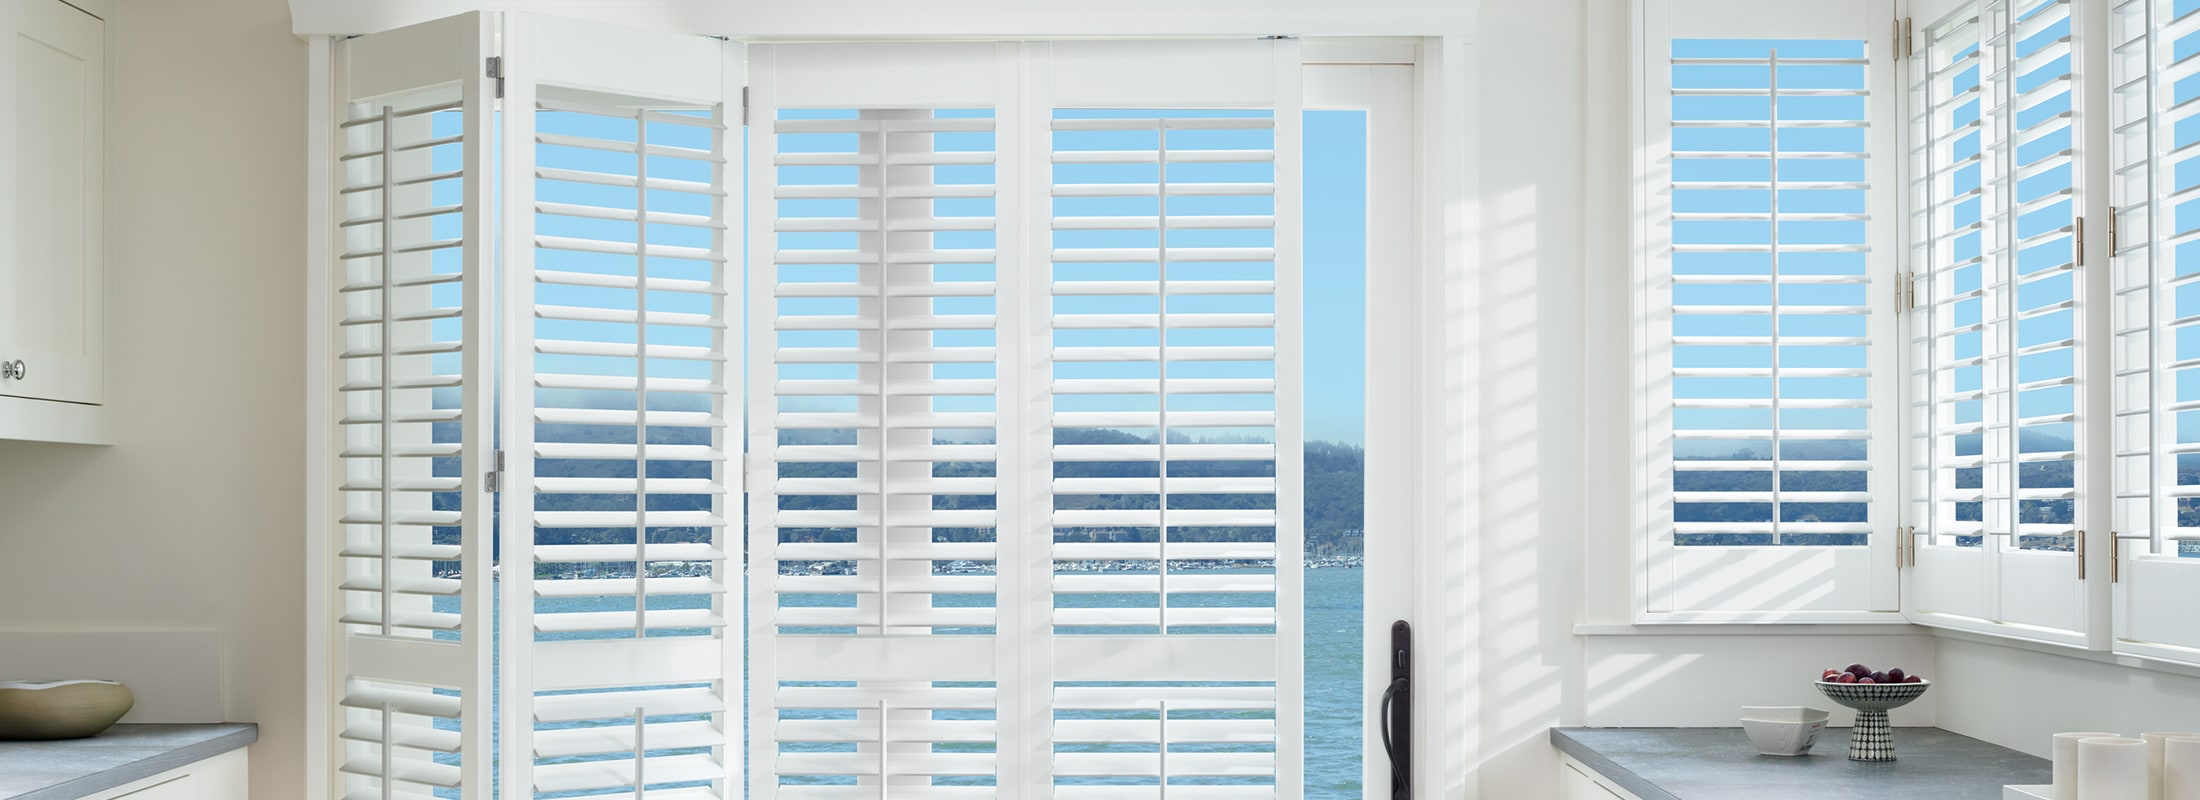 Polysatin shutters in Shutters Bright White - Palm Beach